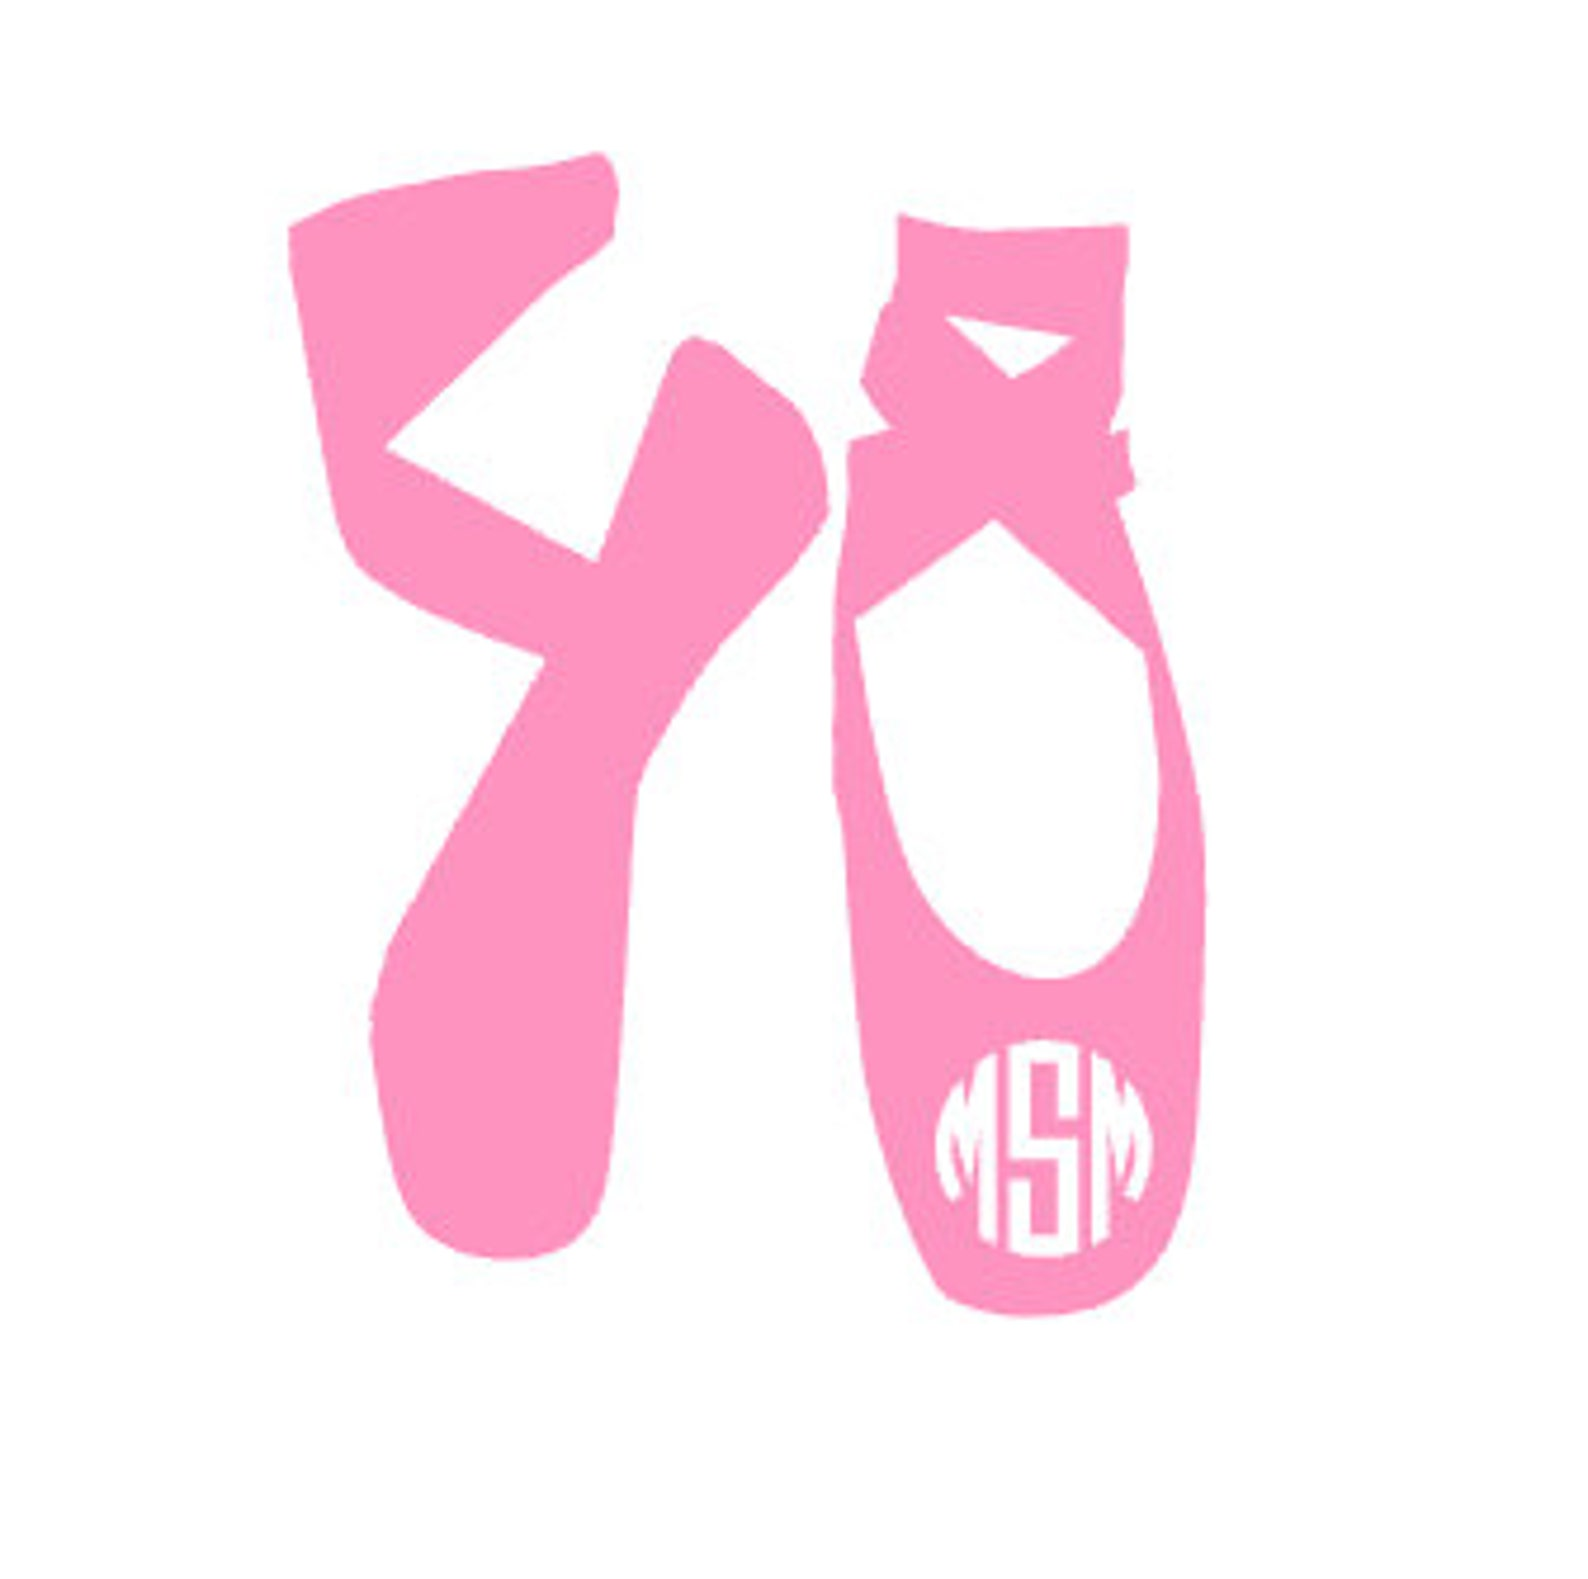 monogrammed ballet shoes vinyl decal - monogrammed vinyl decal sticker - tumbler monogram decal - dancer feet monogram decal -mo